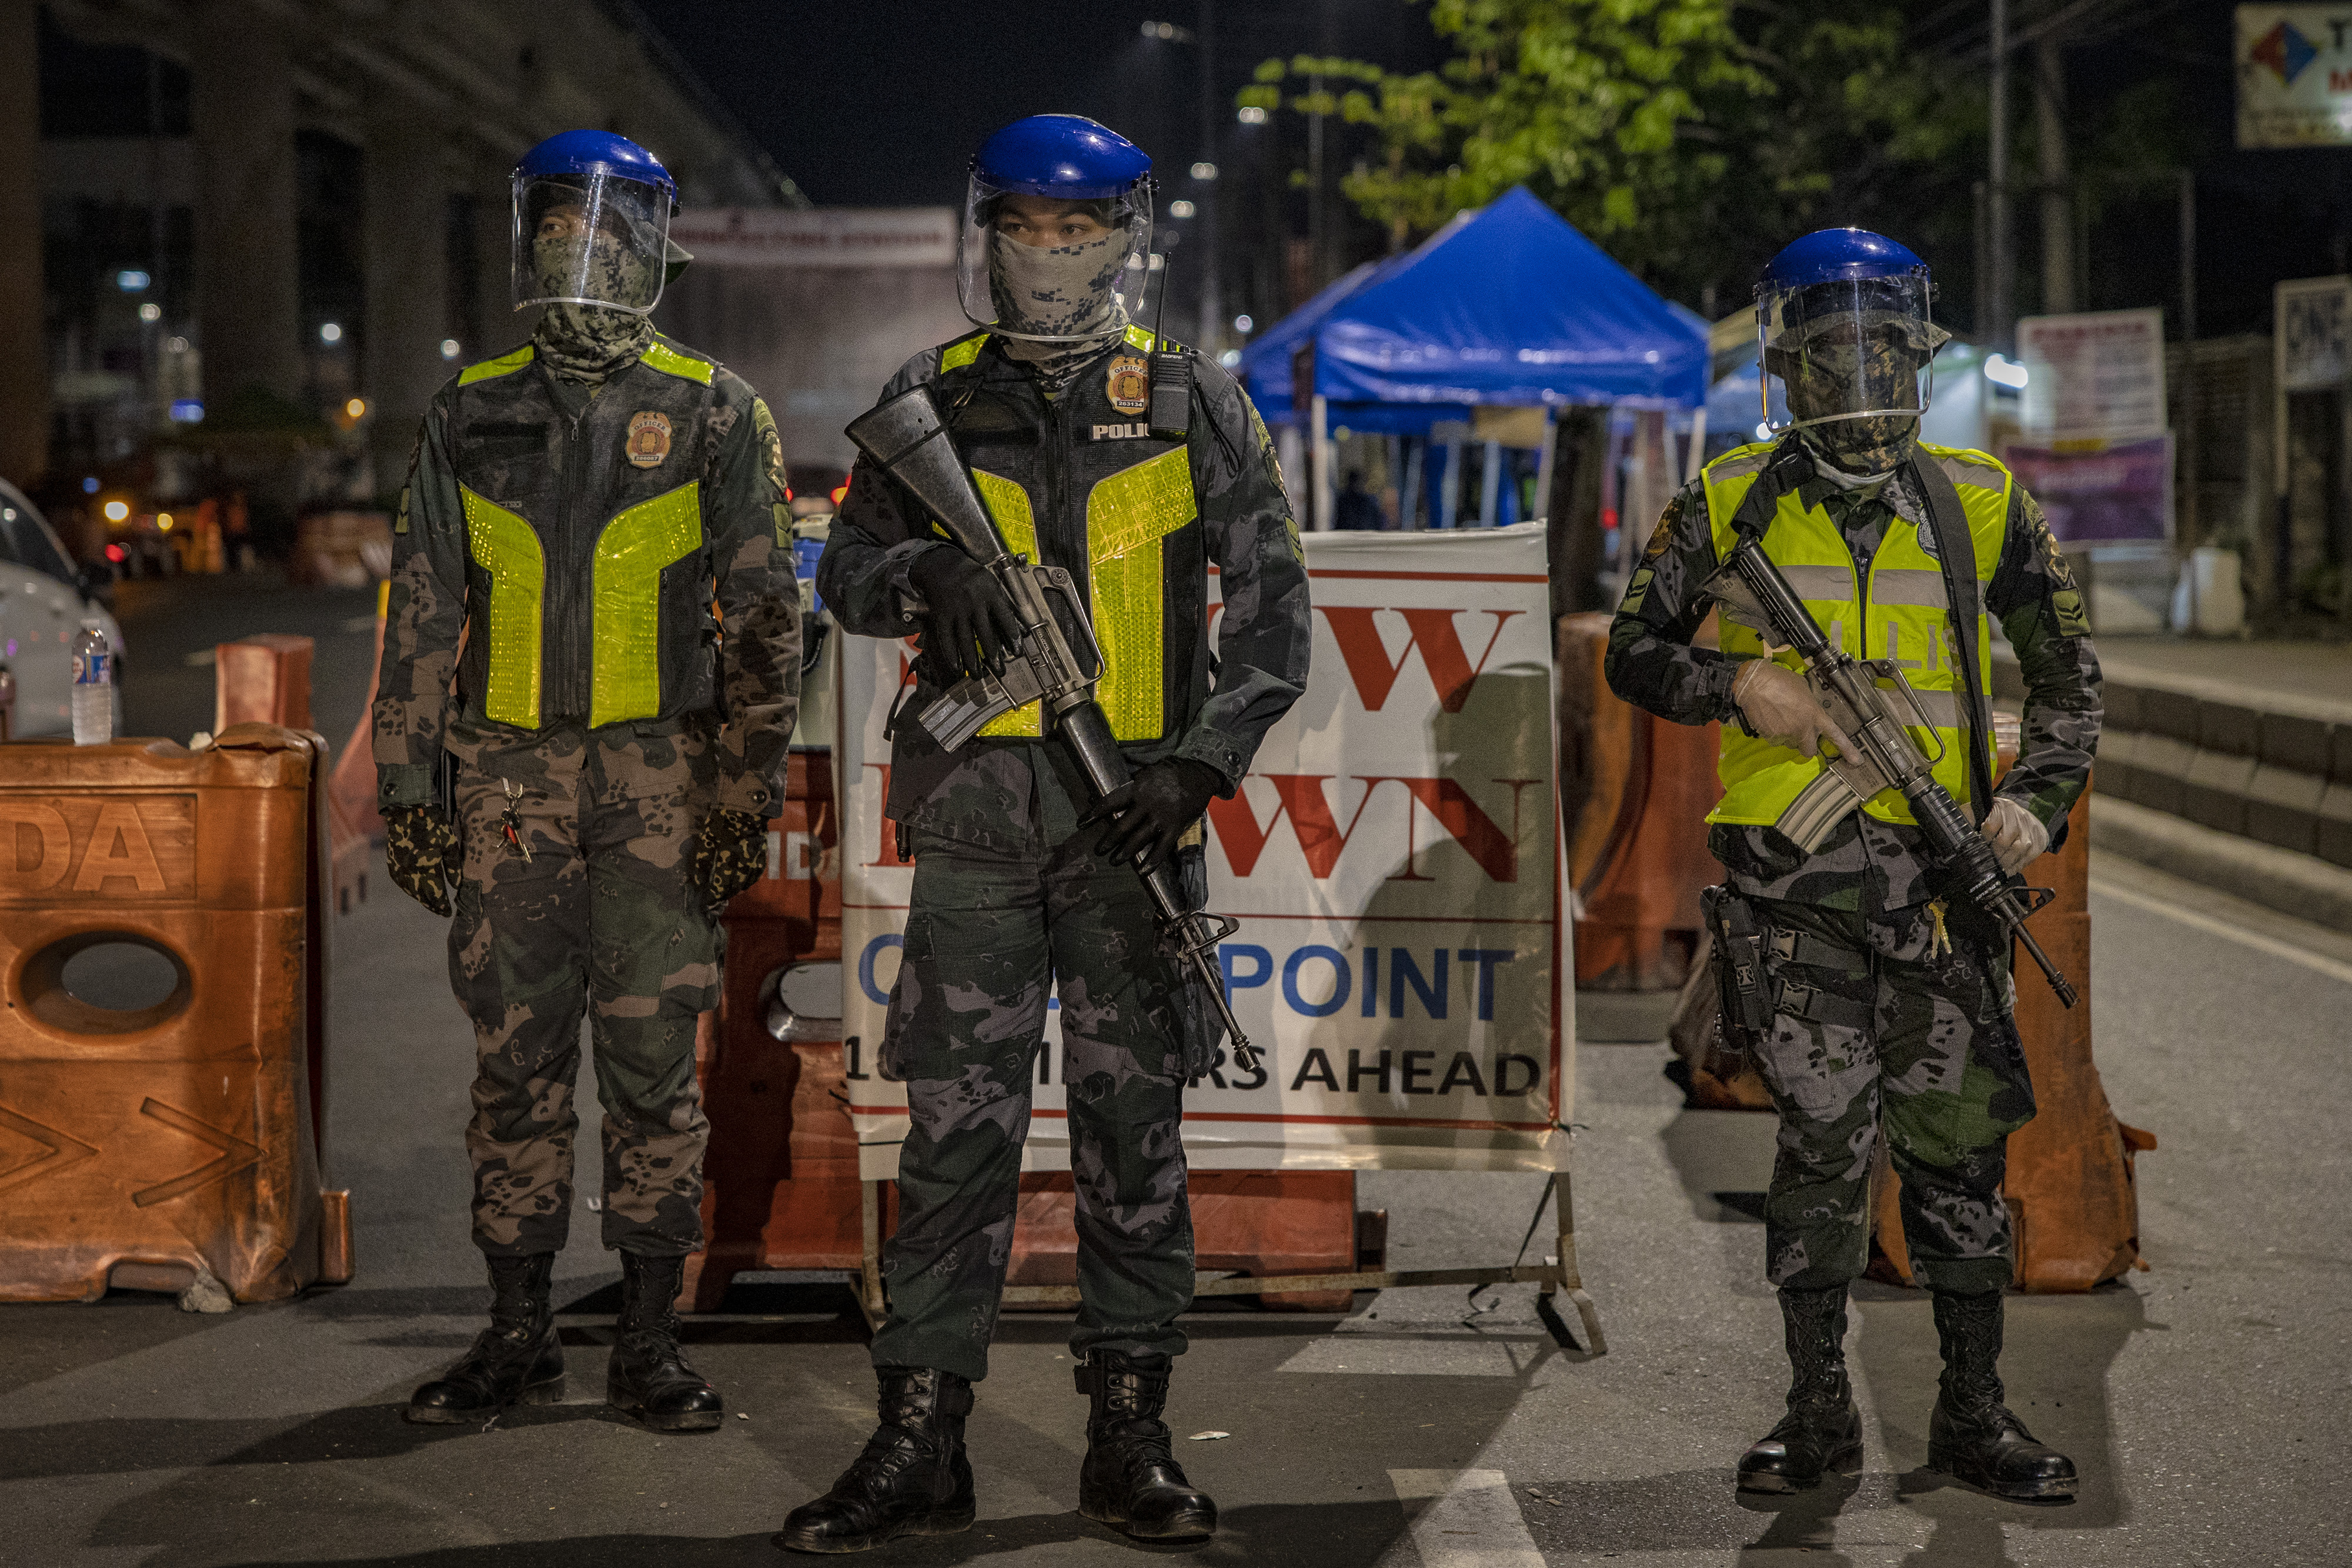 Policemen wearing face shields man a quarantine checkpoint on April 2, 2020 in Marikina, Metro Manila, Philippines. (Photo by Ezra Acayan/Getty Images)